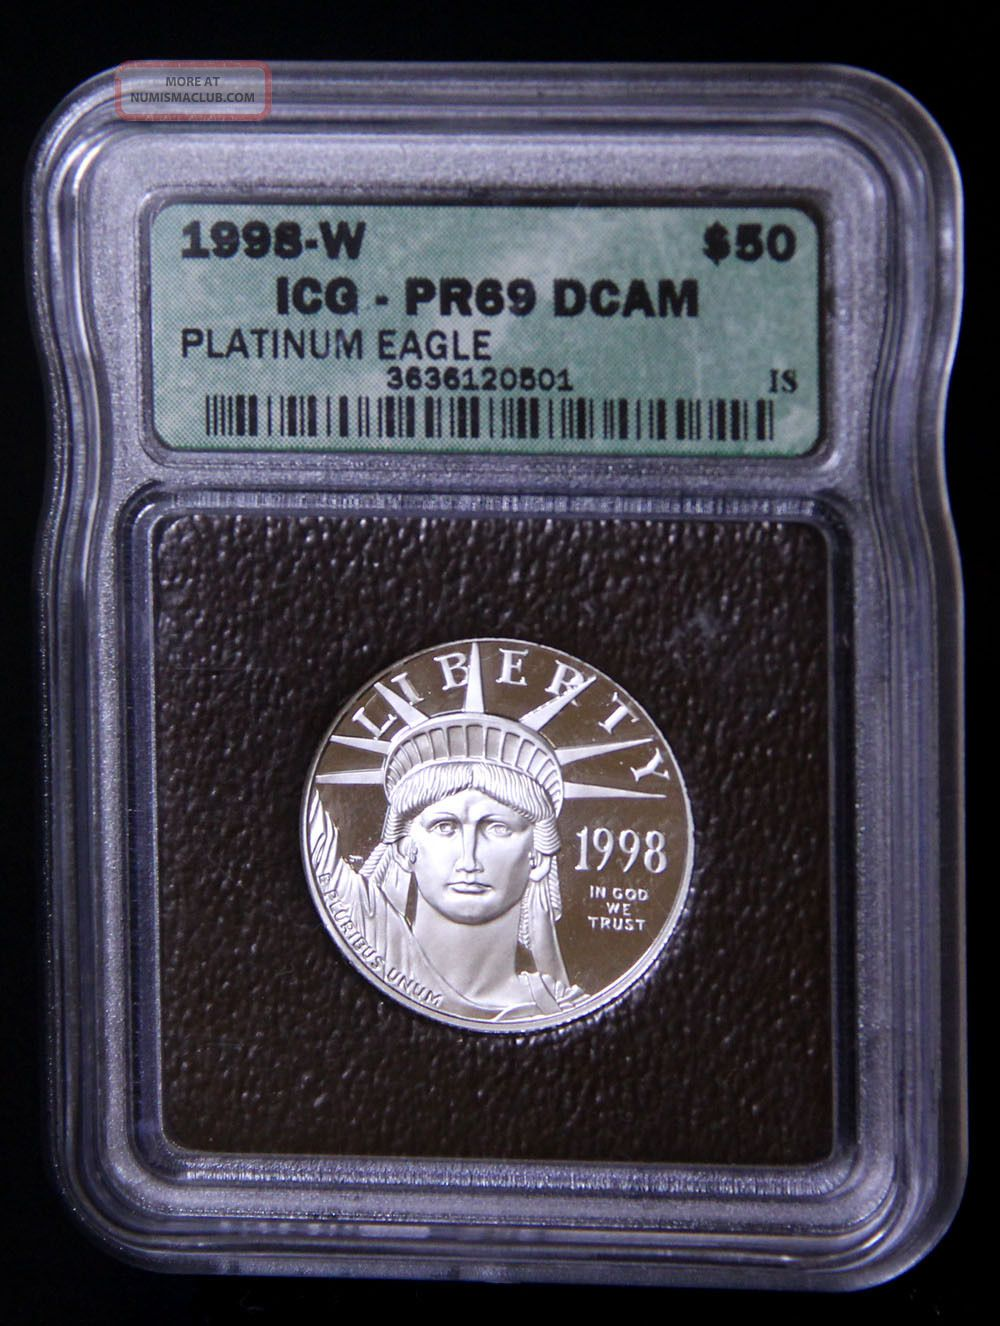 1998 - W $50 1/2 Oz Platinum Eagle Pr69 Platinum photo